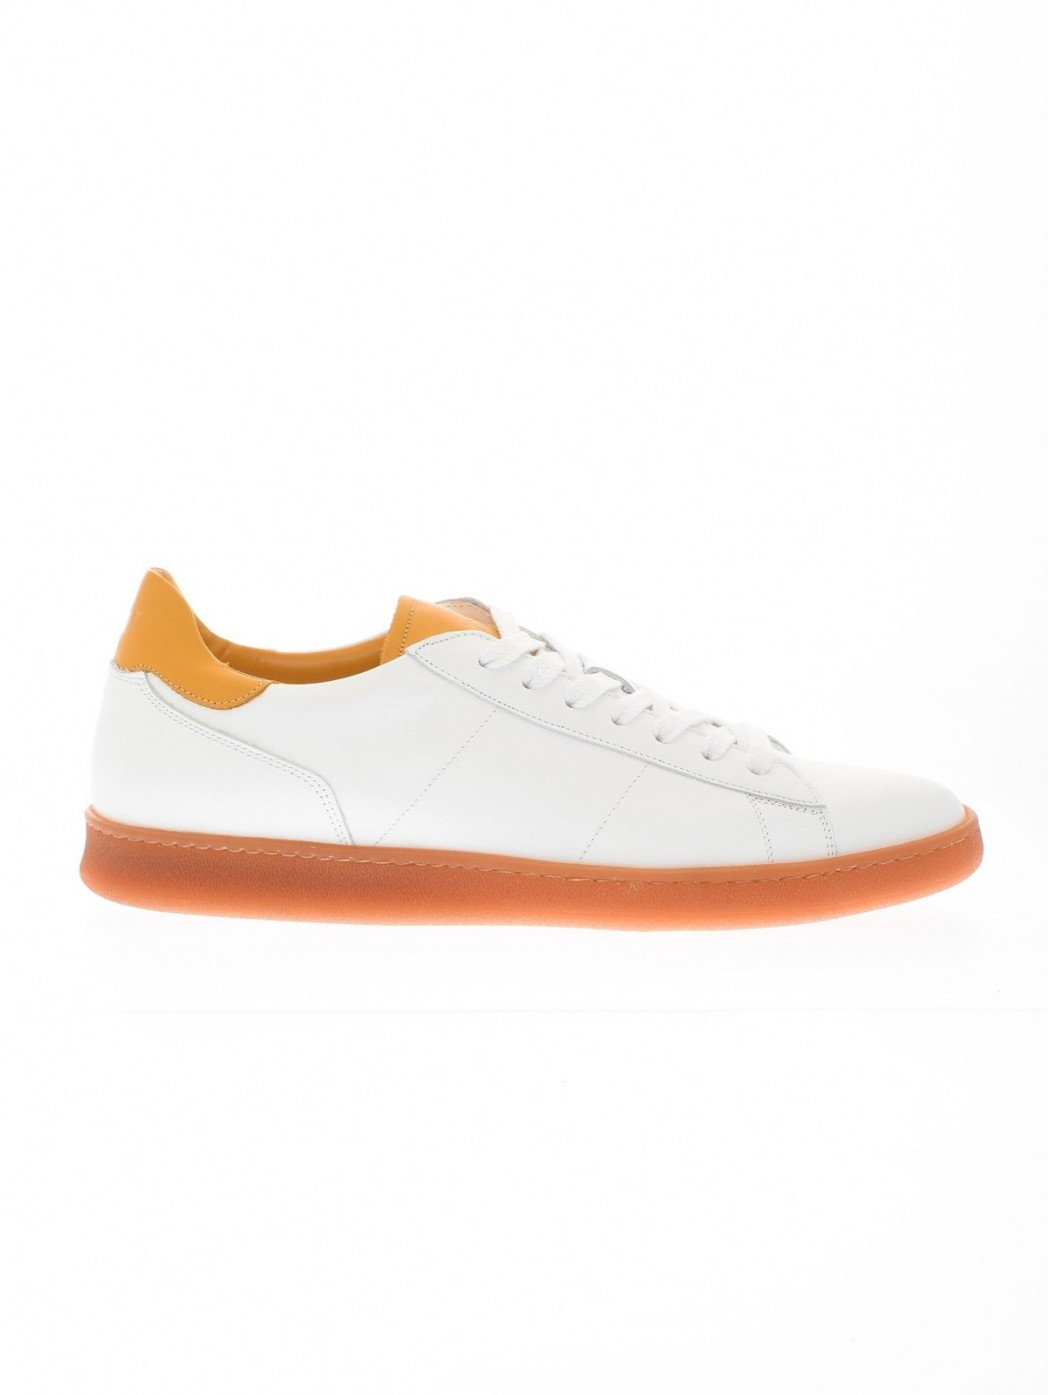 ROV BASIC126 HONEY SNEAKERS